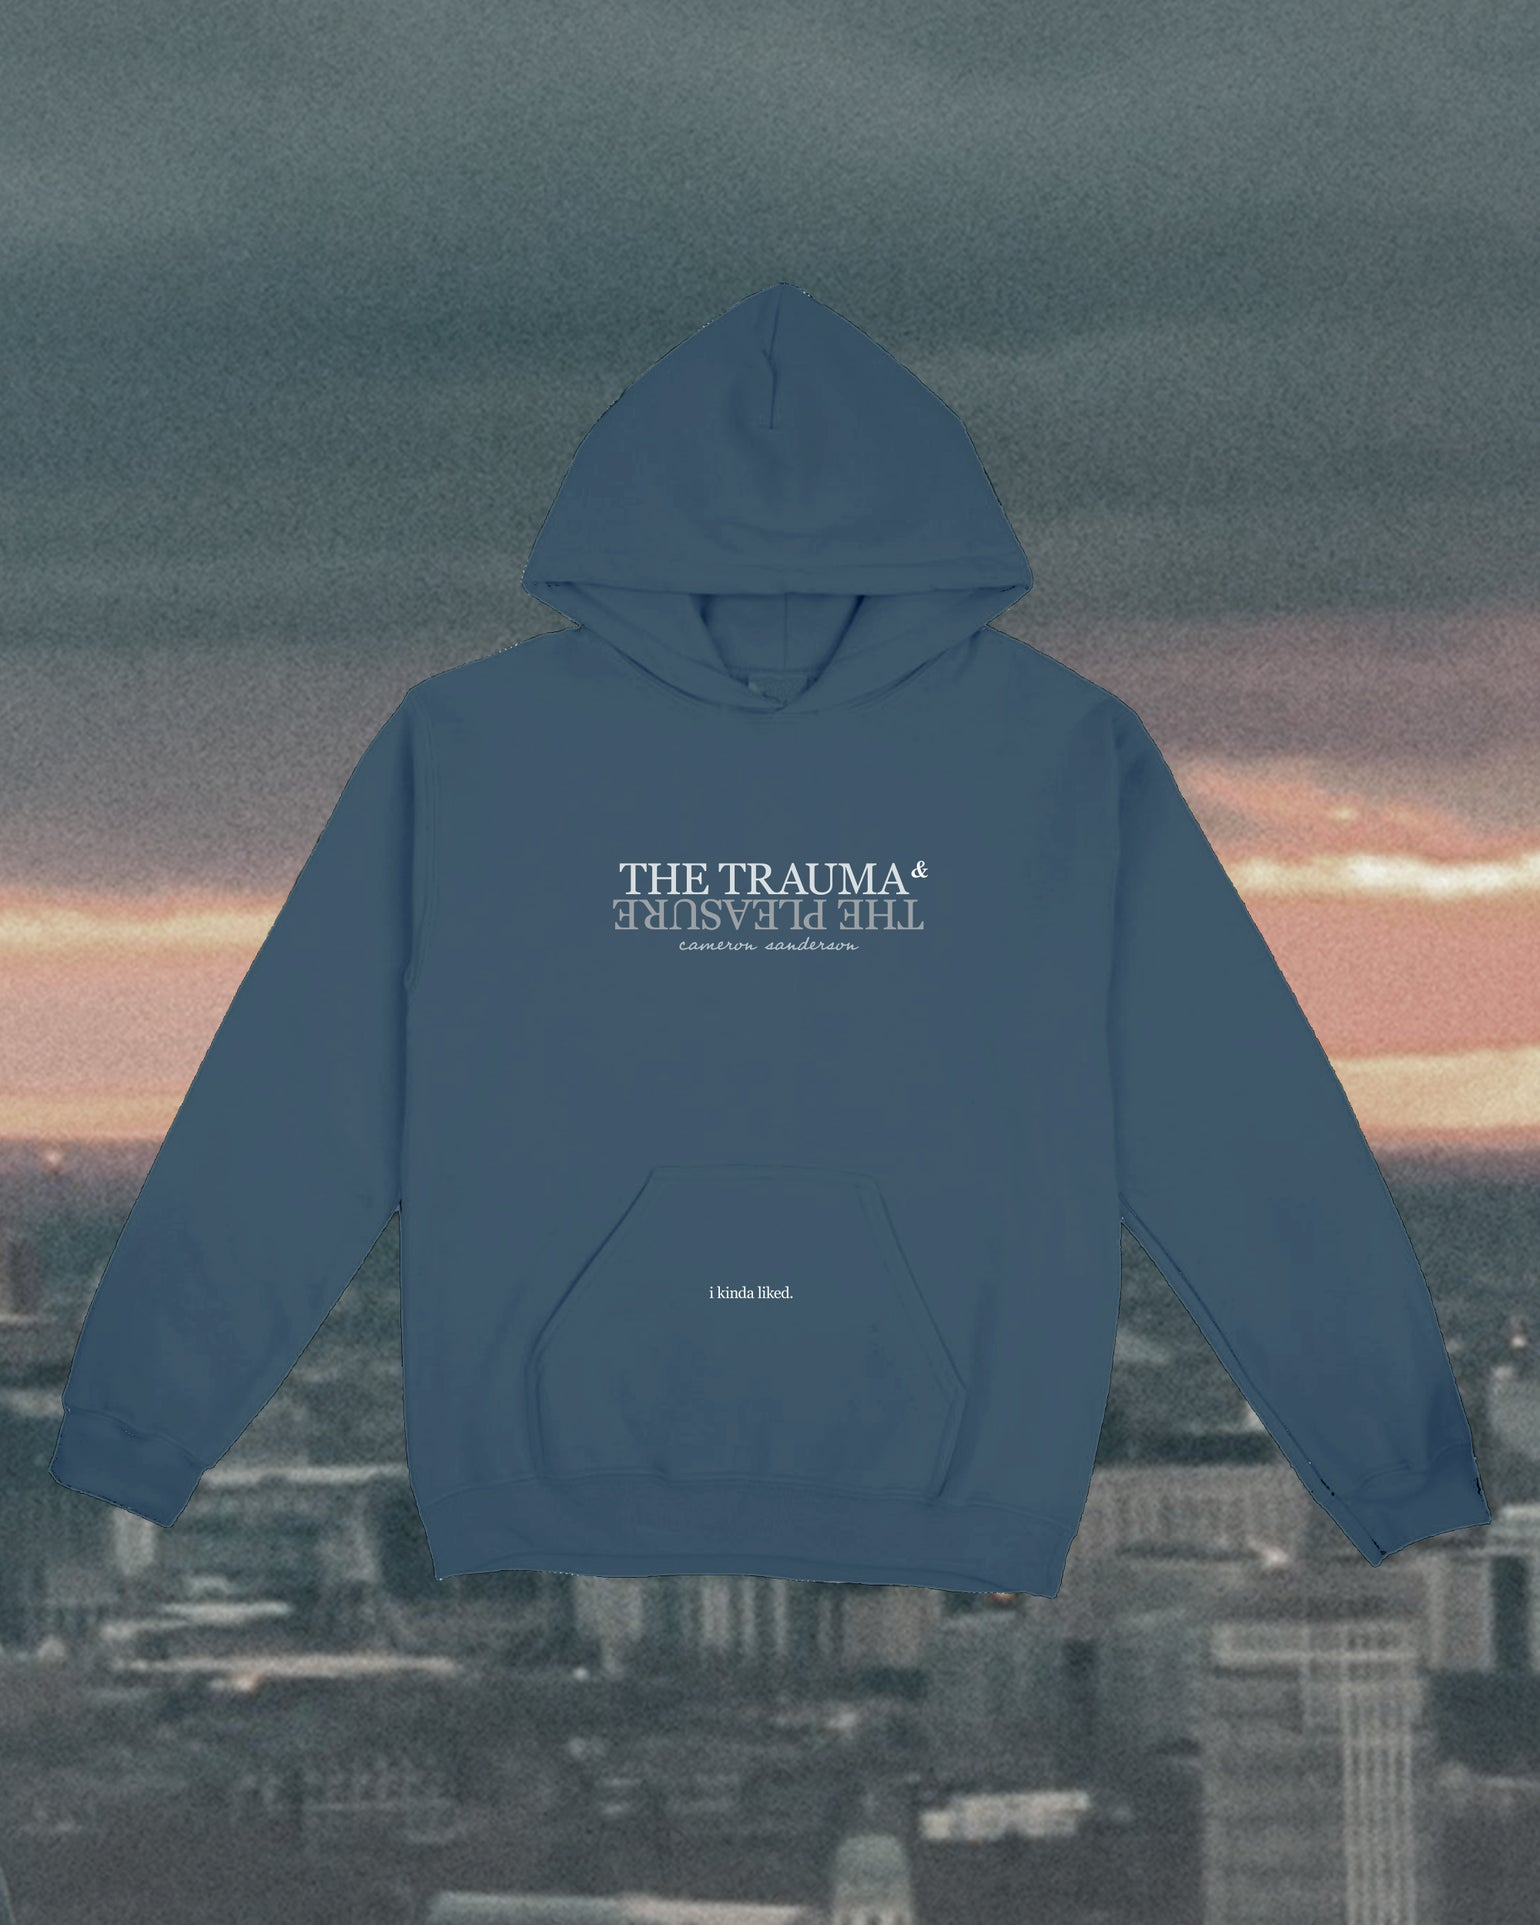 Image of The Trauma and The Pleasure: Blue Hoodie